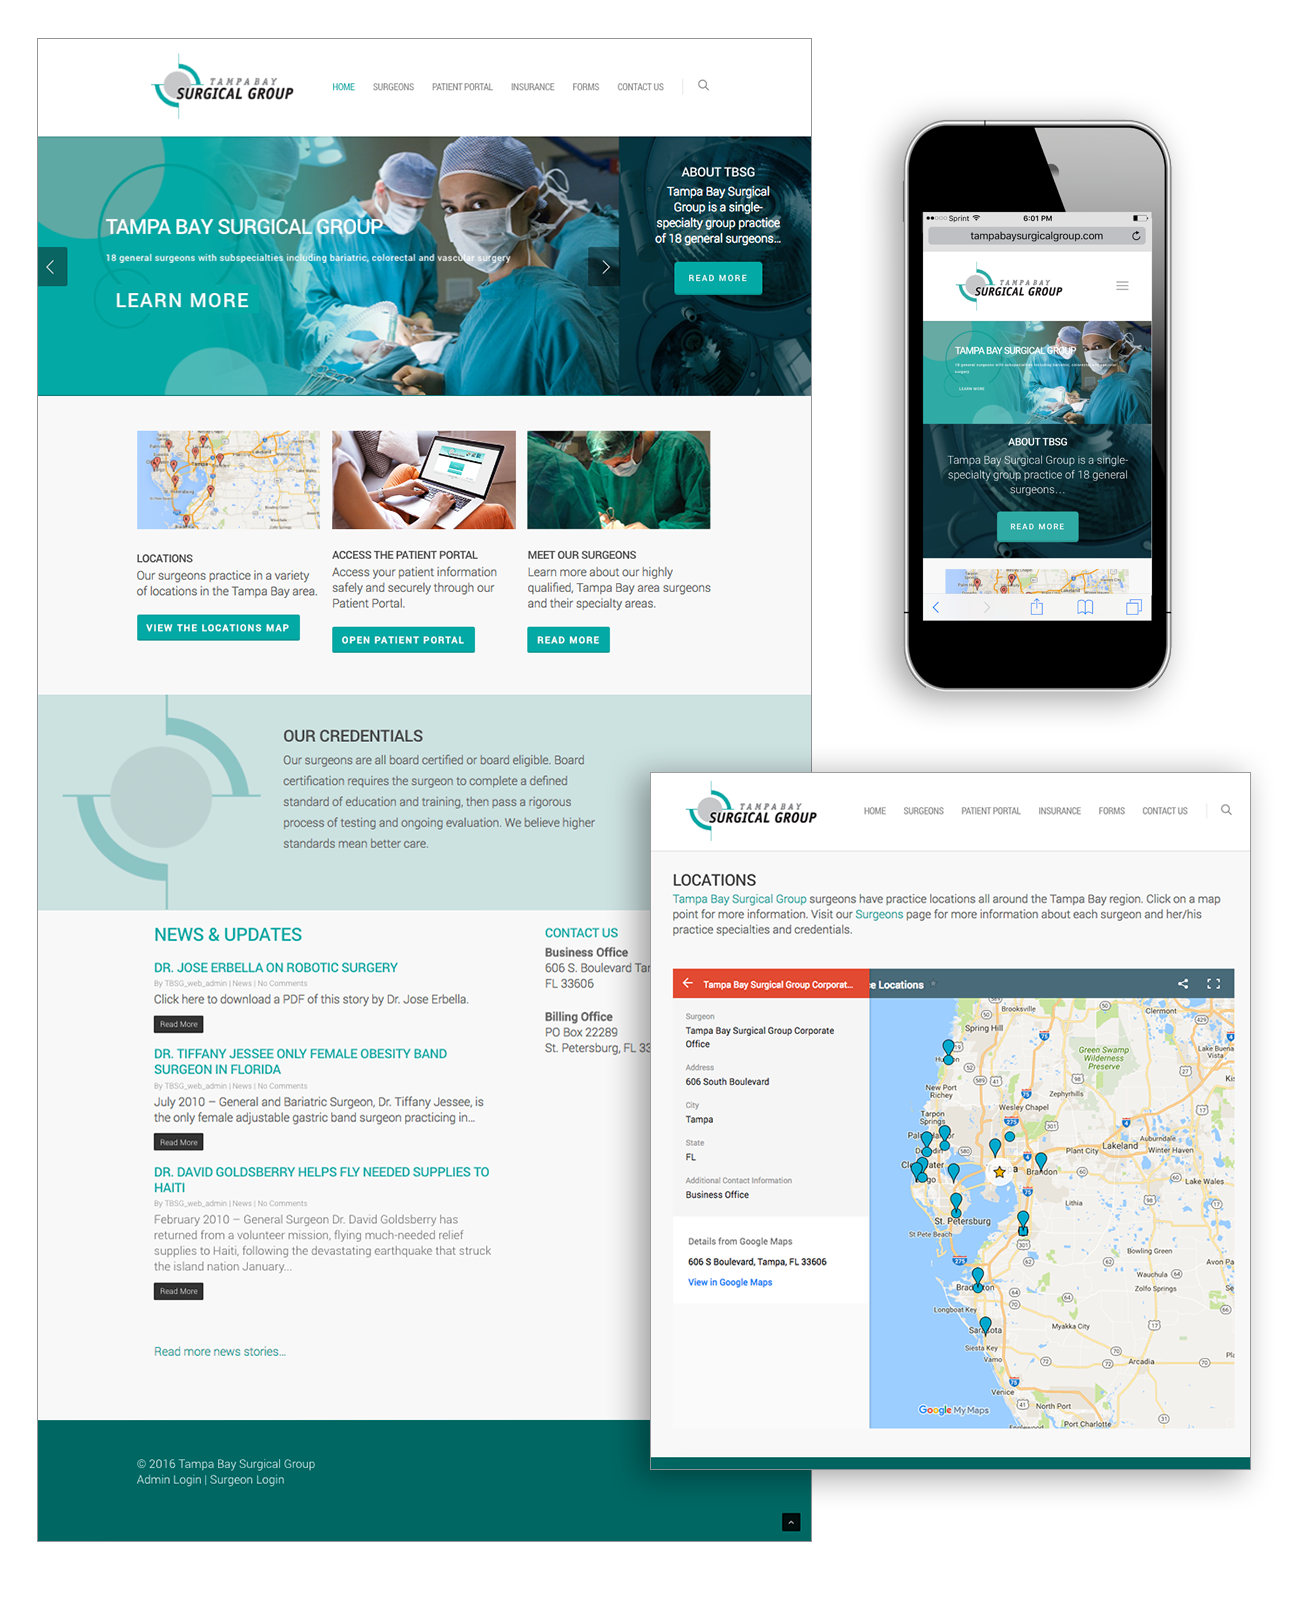 Tampa Bay Surgical Group website